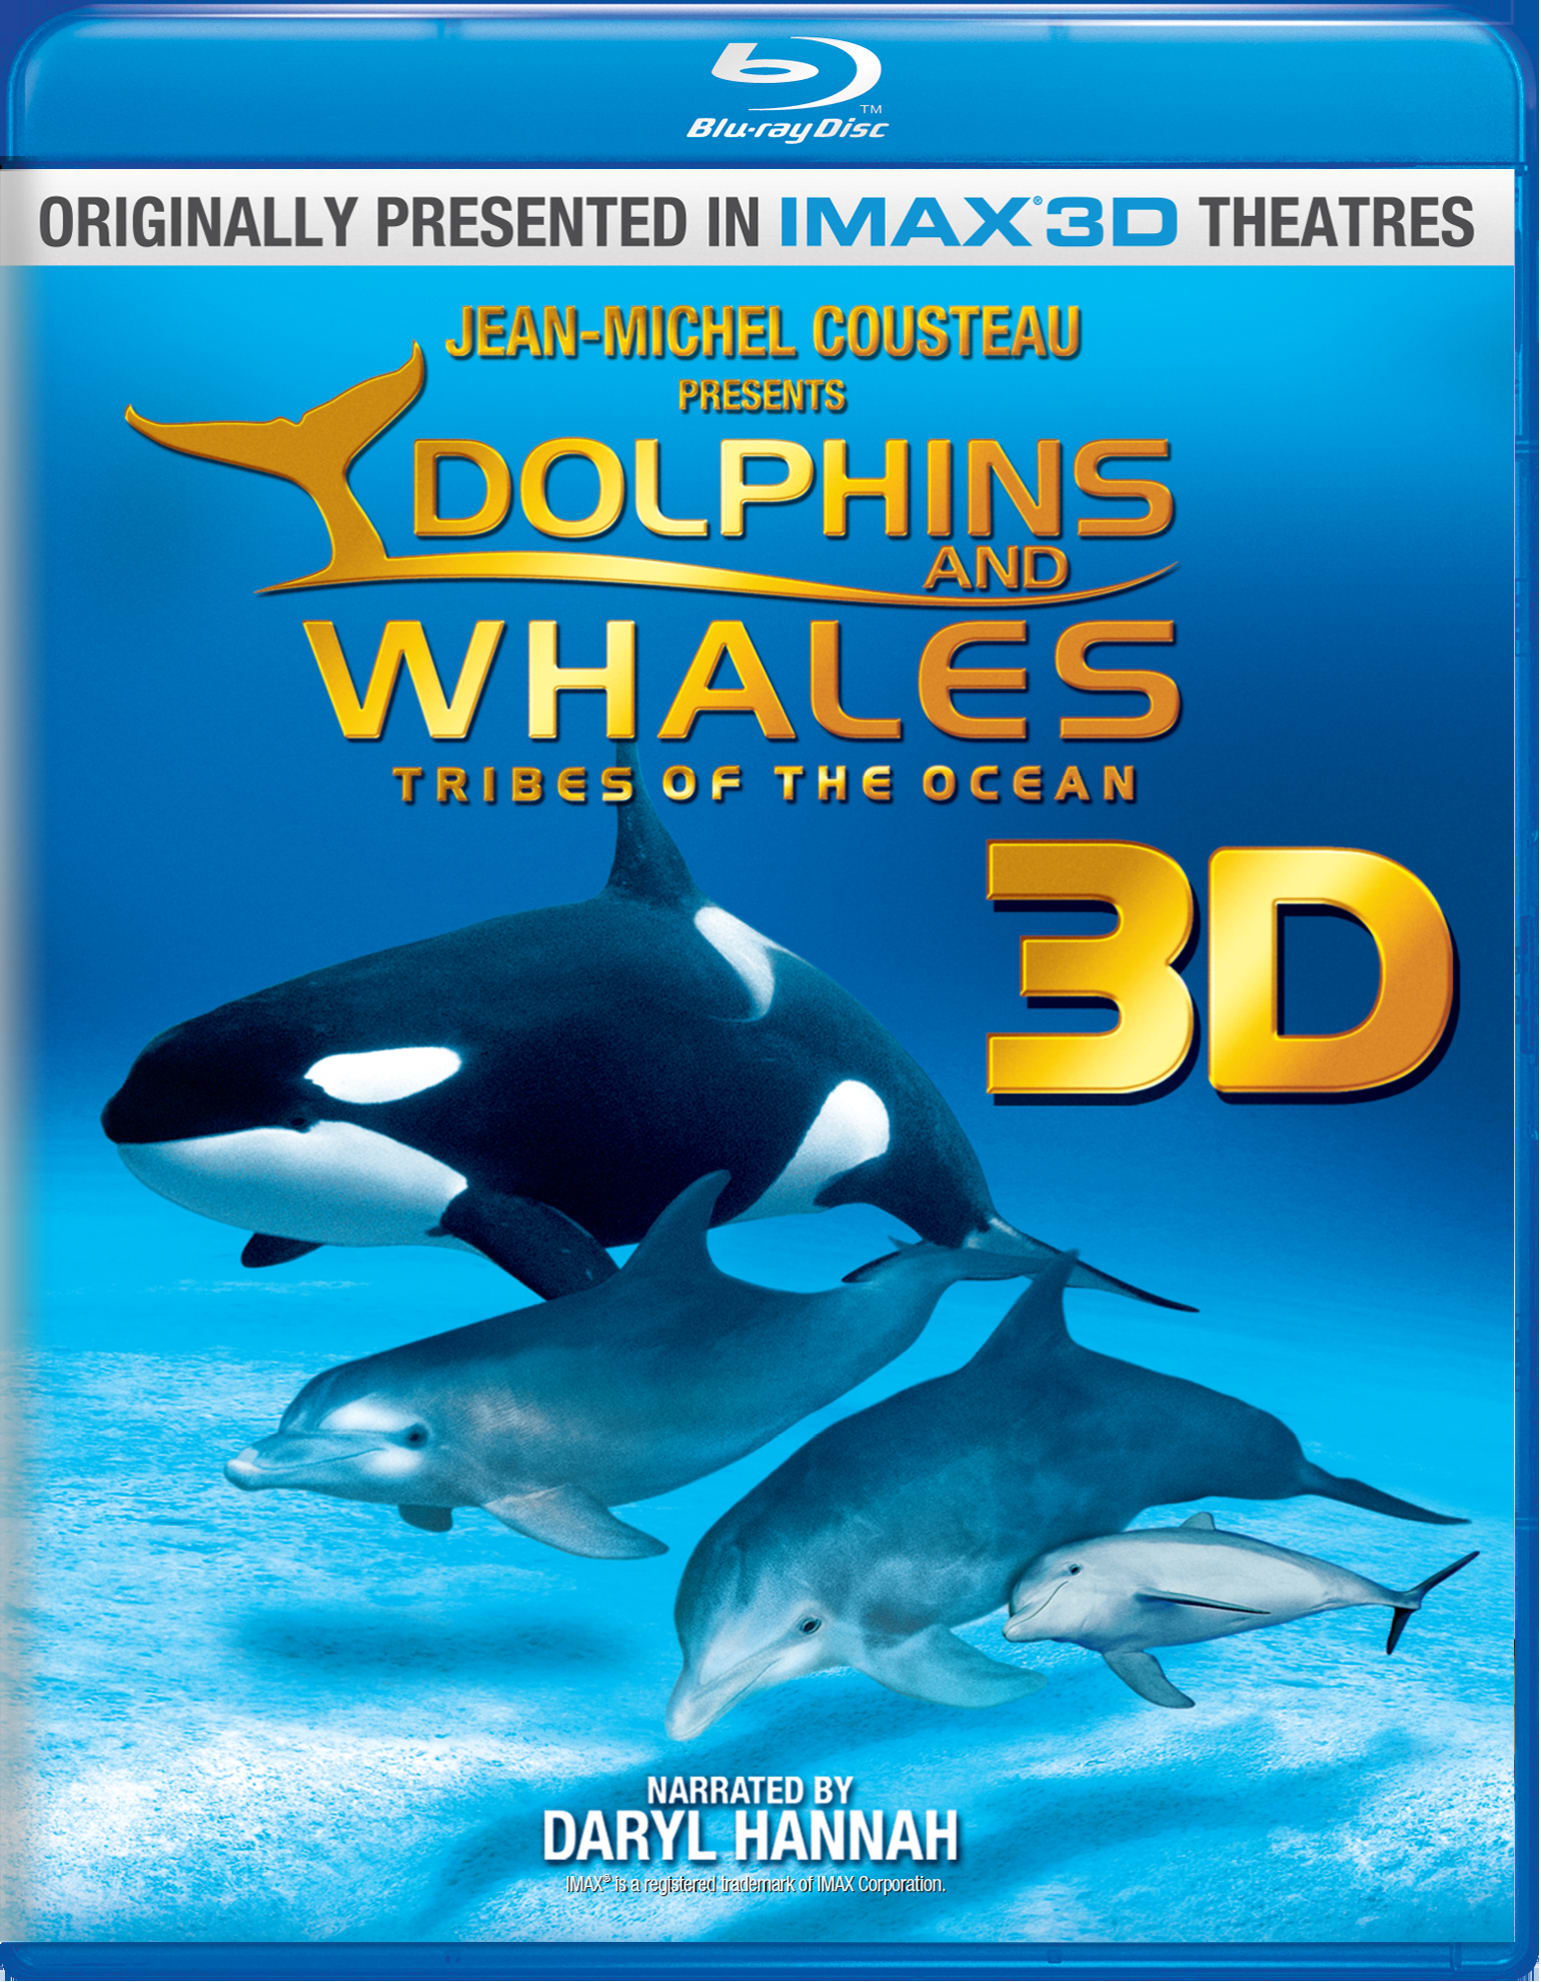 Dolphins and Whales 3D - Tribes of the Ocean [Blu-ray]